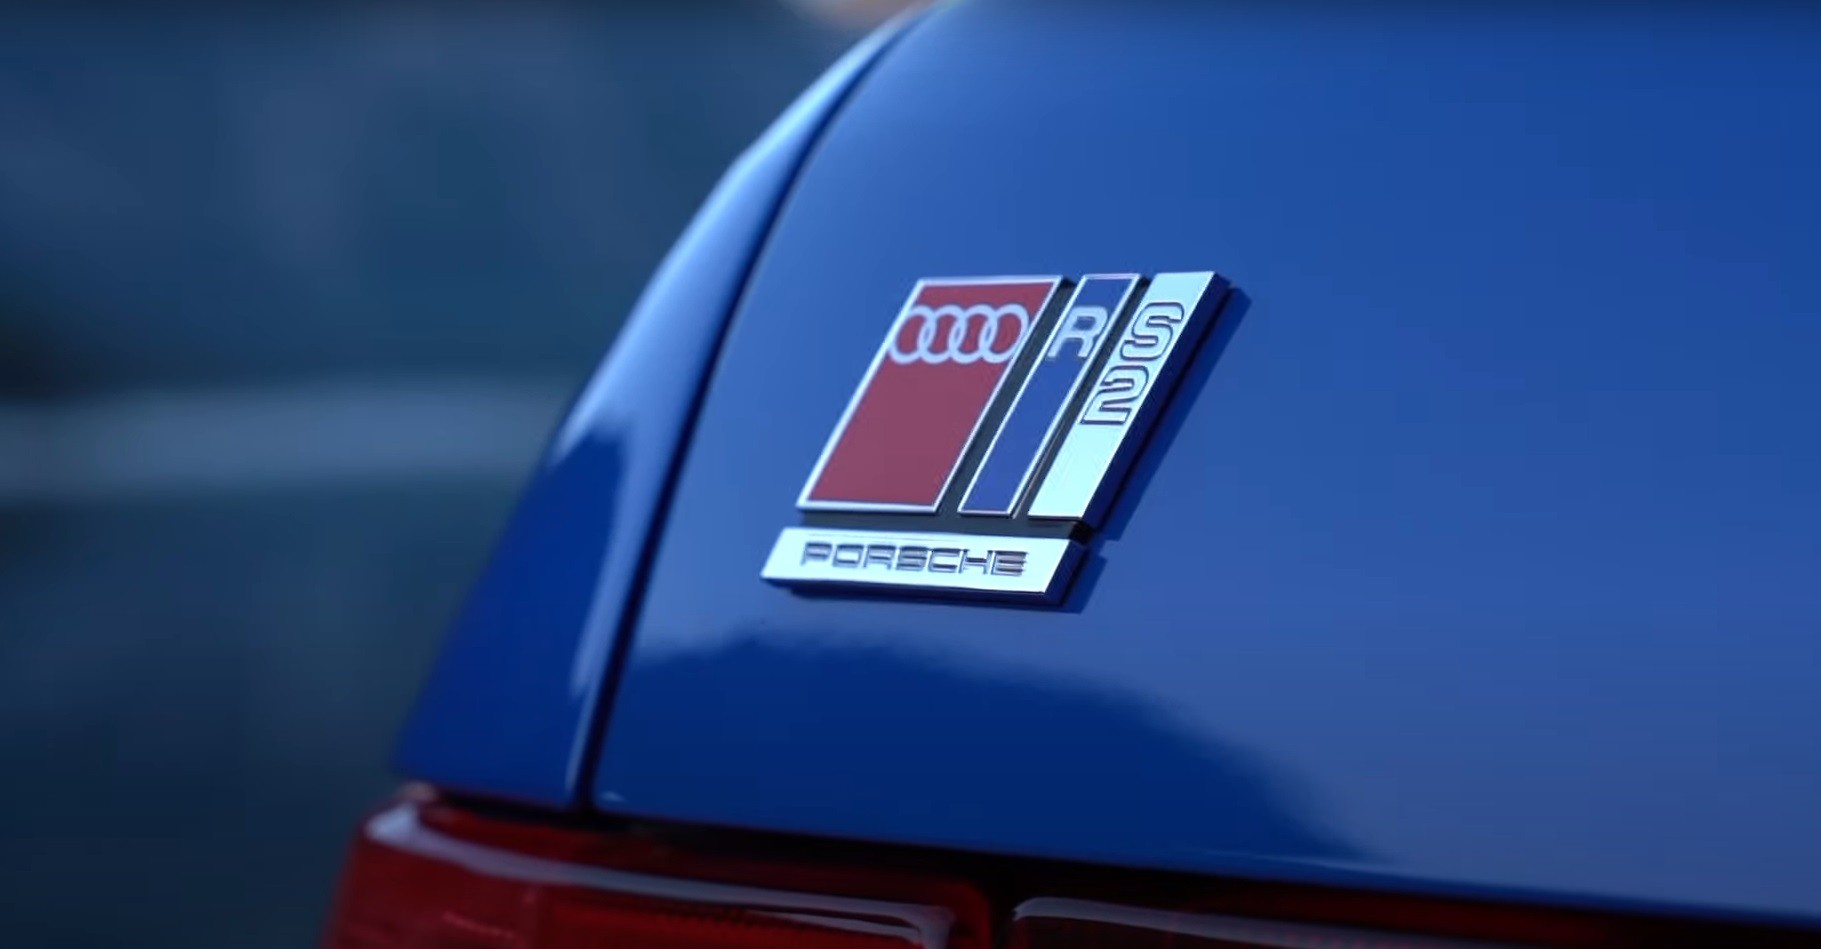 1994-audi-rs2-avant-is-the-porsche-co-production-that-started-the-whole-rs-range_2.jpg